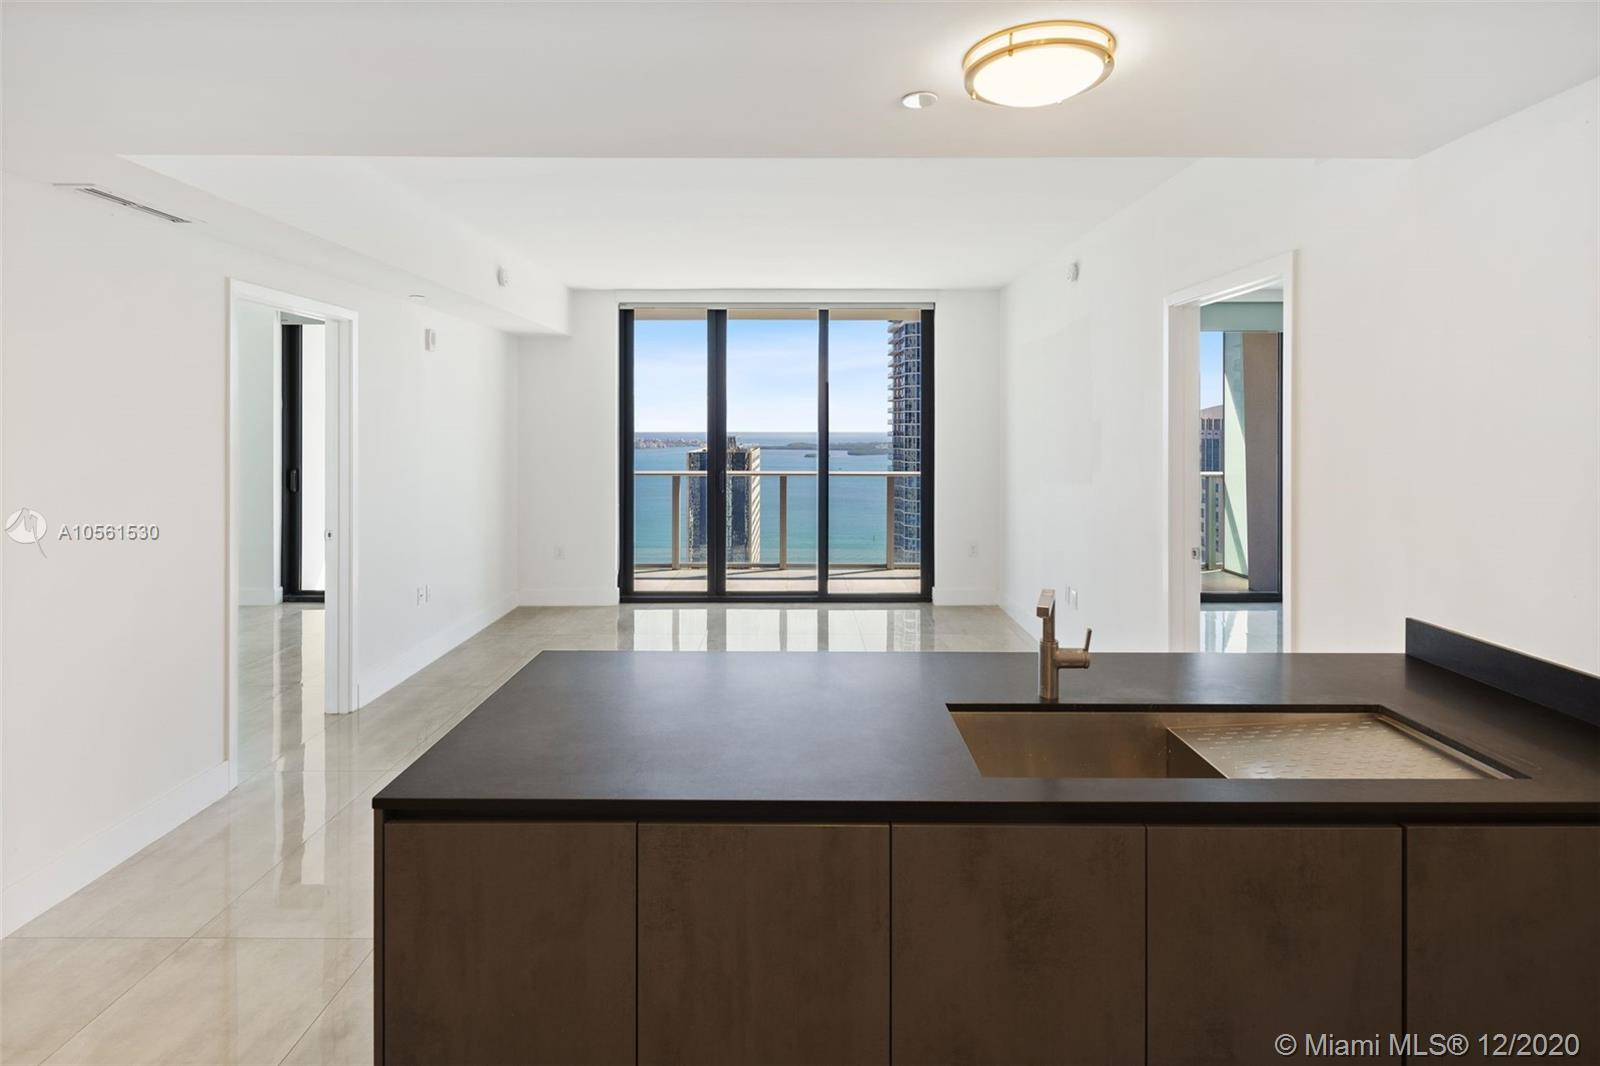 The best line in the building, two bedrooms plus 2  dens(one of den can be used like 3bedroom), a high floor with a beautiful view of the bay and the ocean. Italian porcelain floor, modern blinds and lighting, top of the line appliances. Huge balcony with summer kitchen.